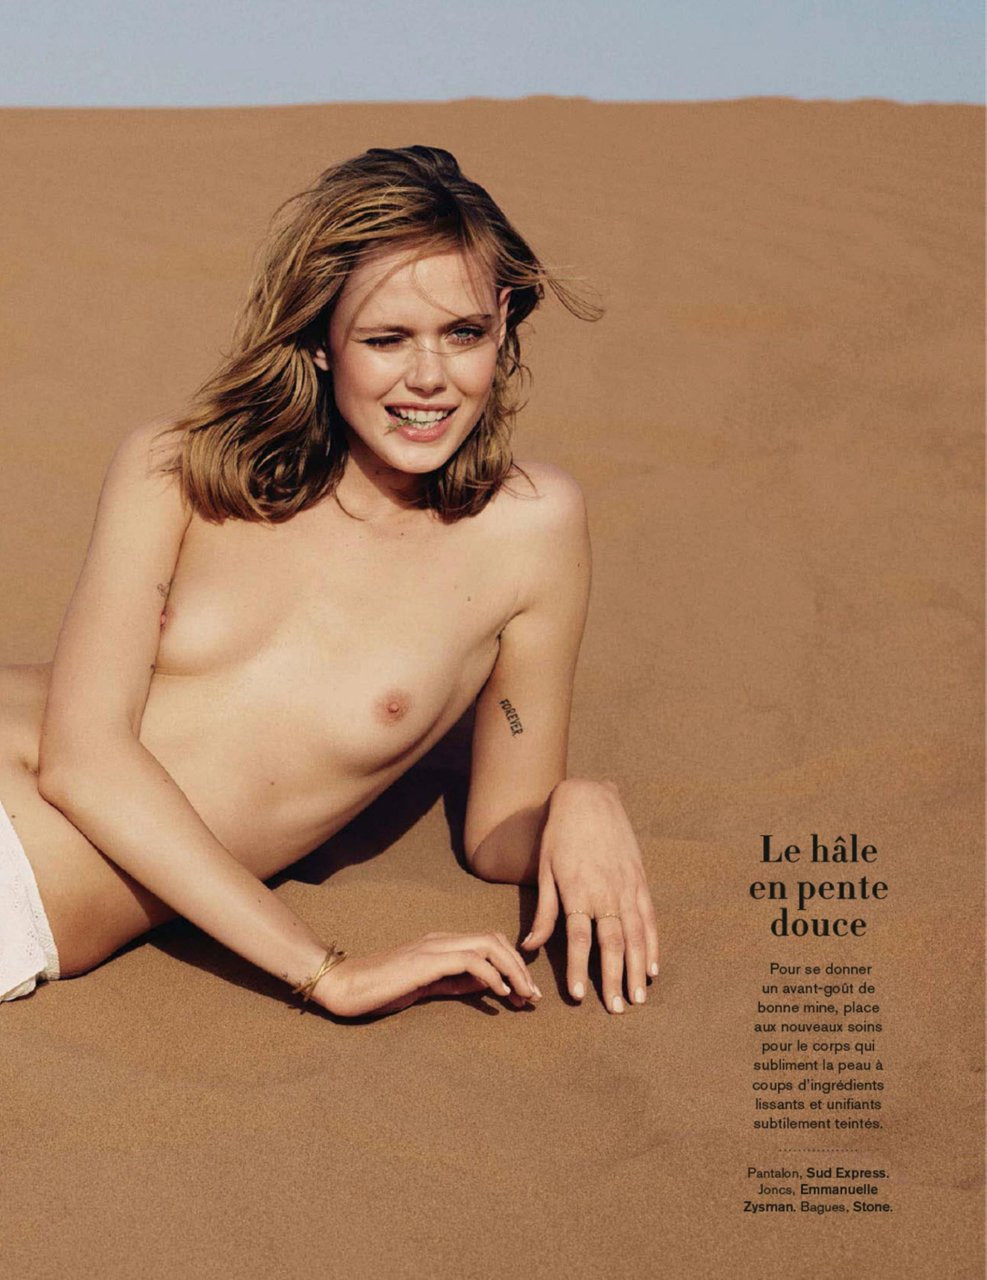 Frida Gustavsson Topless 16 TheFappening.nu